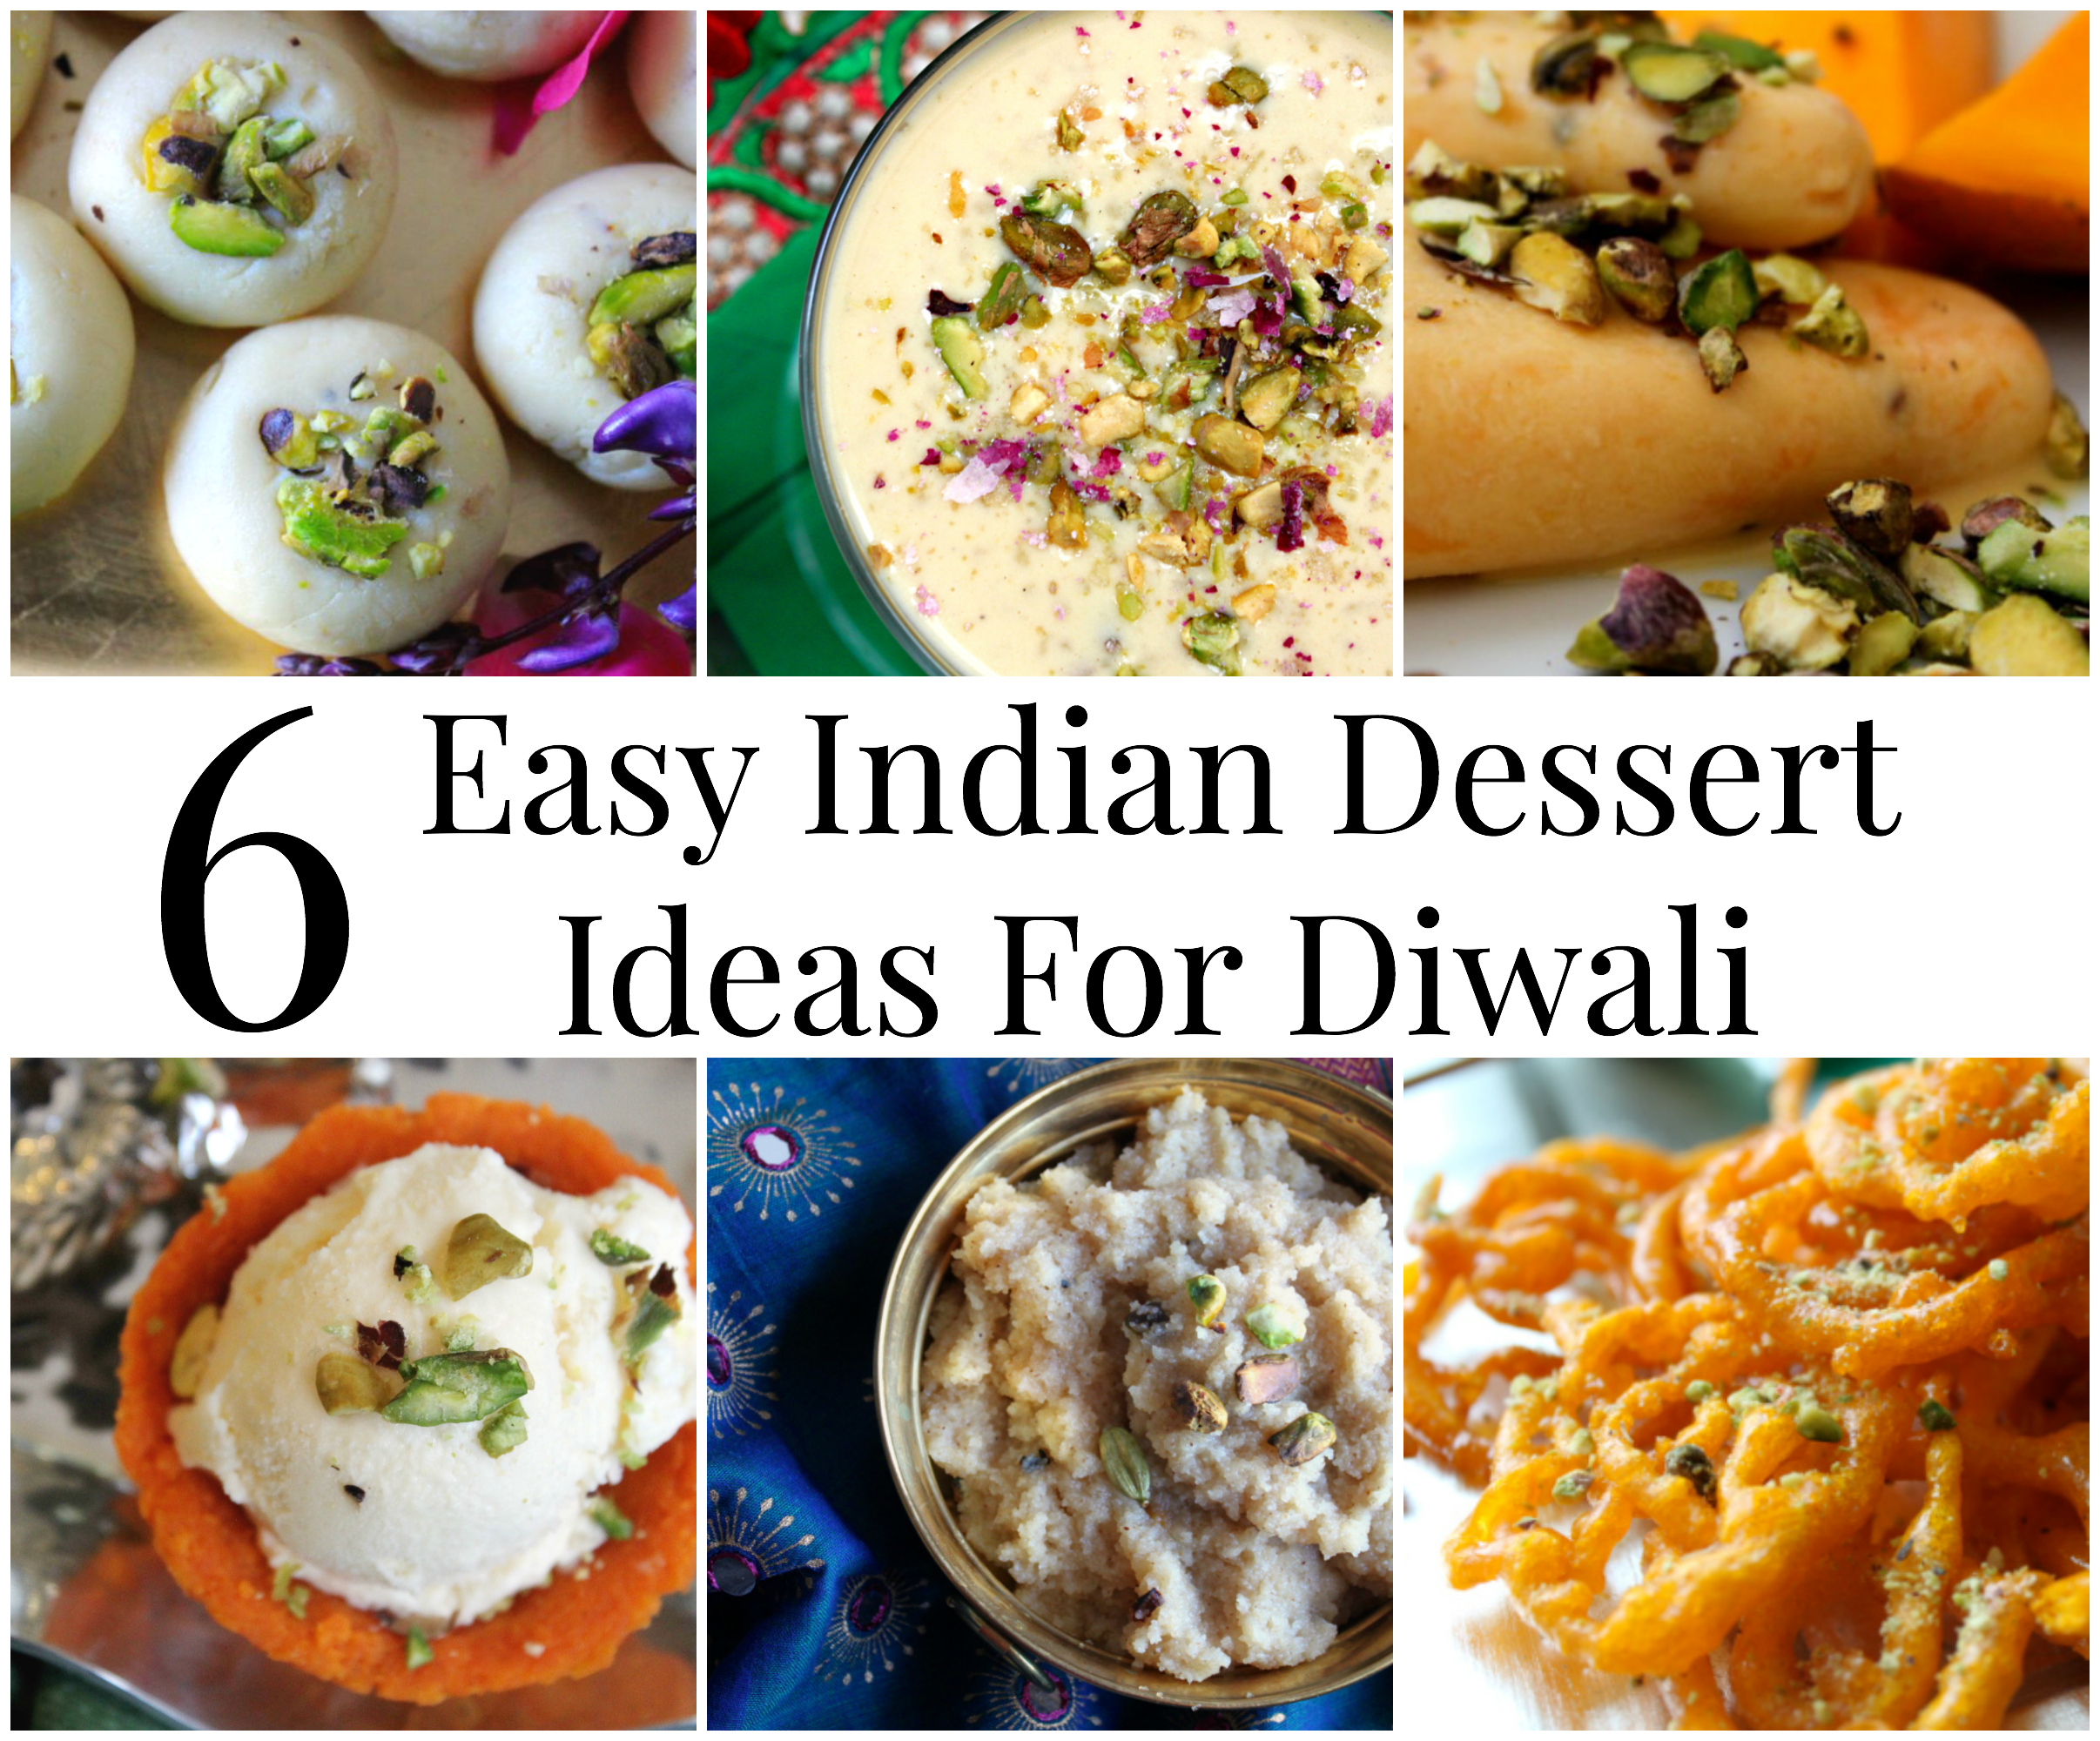 6 Easy Indian Diwali Desserts and My Diwali Menu